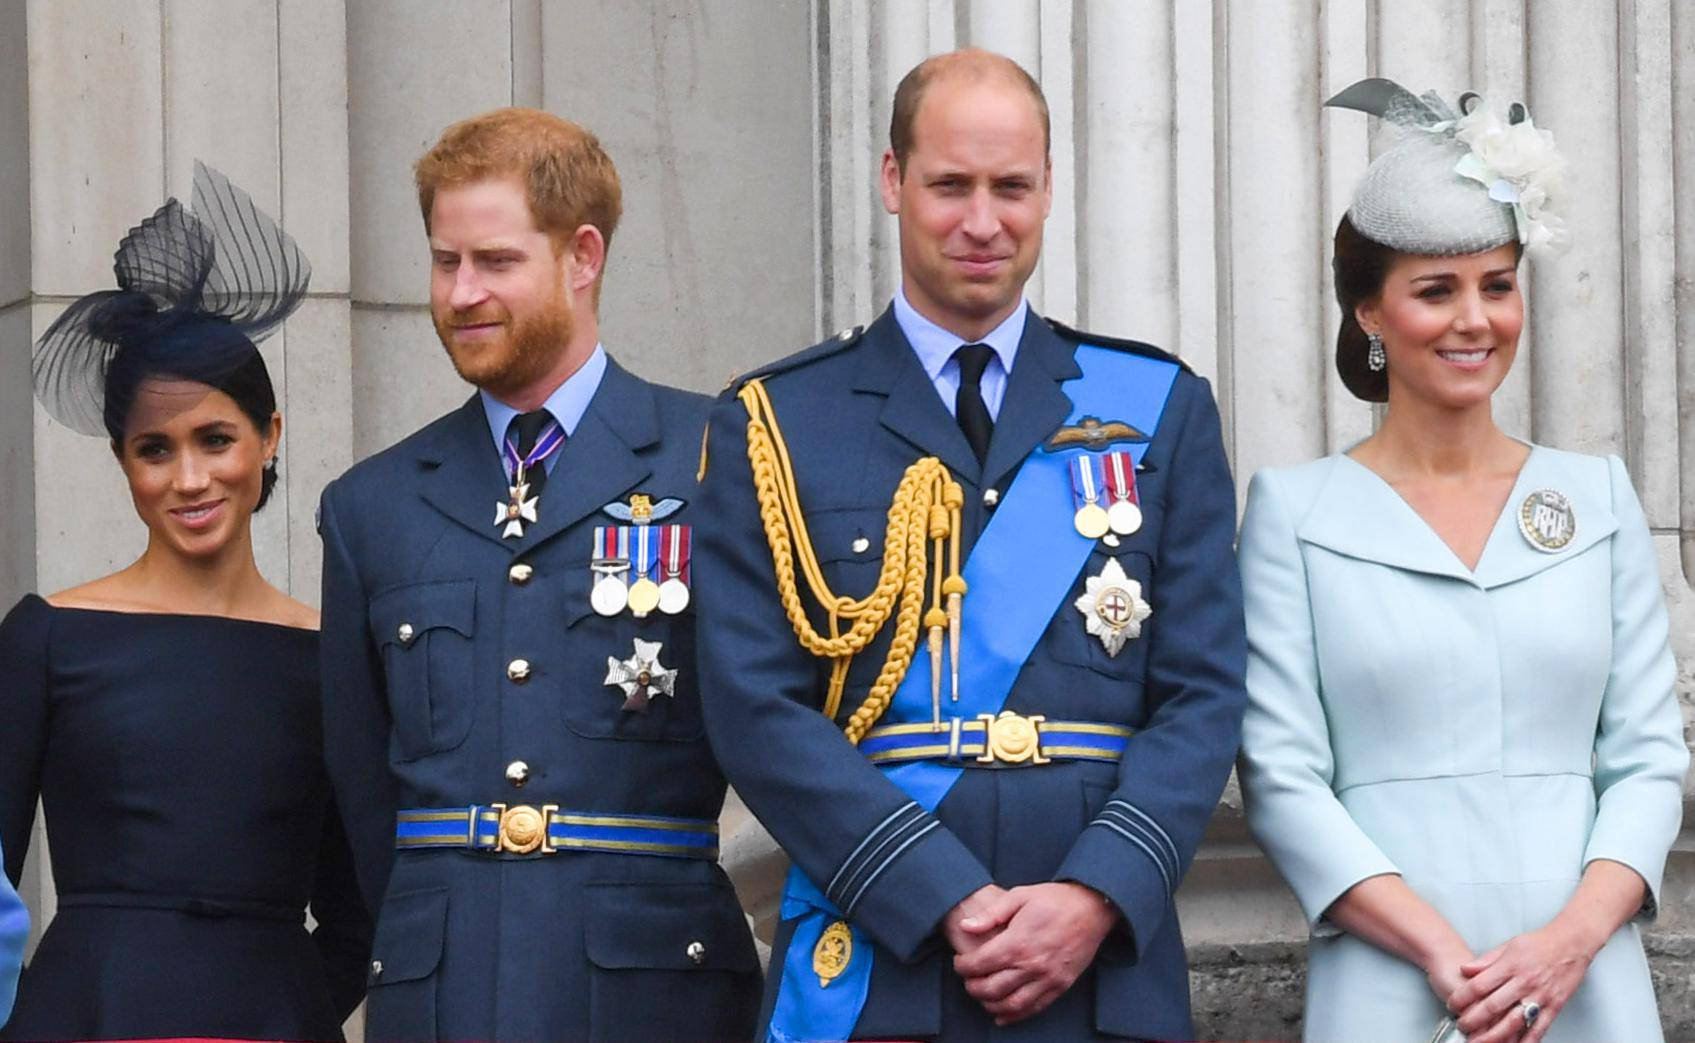 Royals Watch The Flypast To Commemorate Royal Air Force Centenary